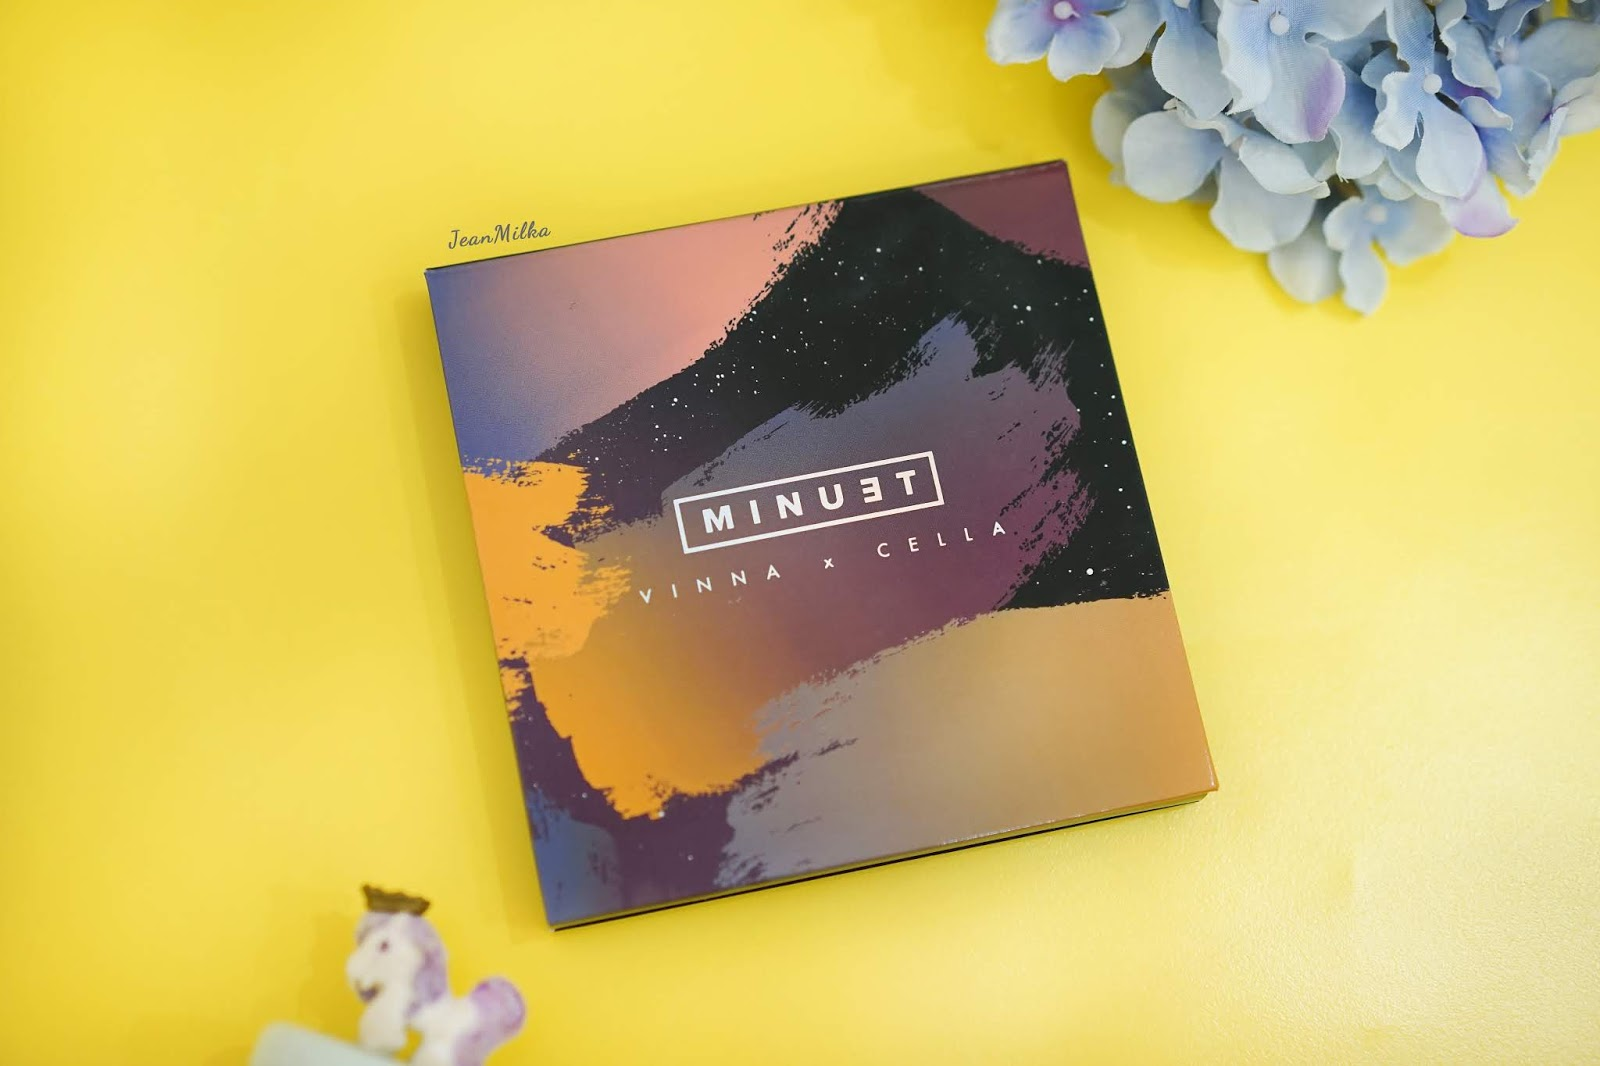 minuet, minuet palette, vinna gracia, cindercella, makeup indonesia, makeup product, review, review minuet palette